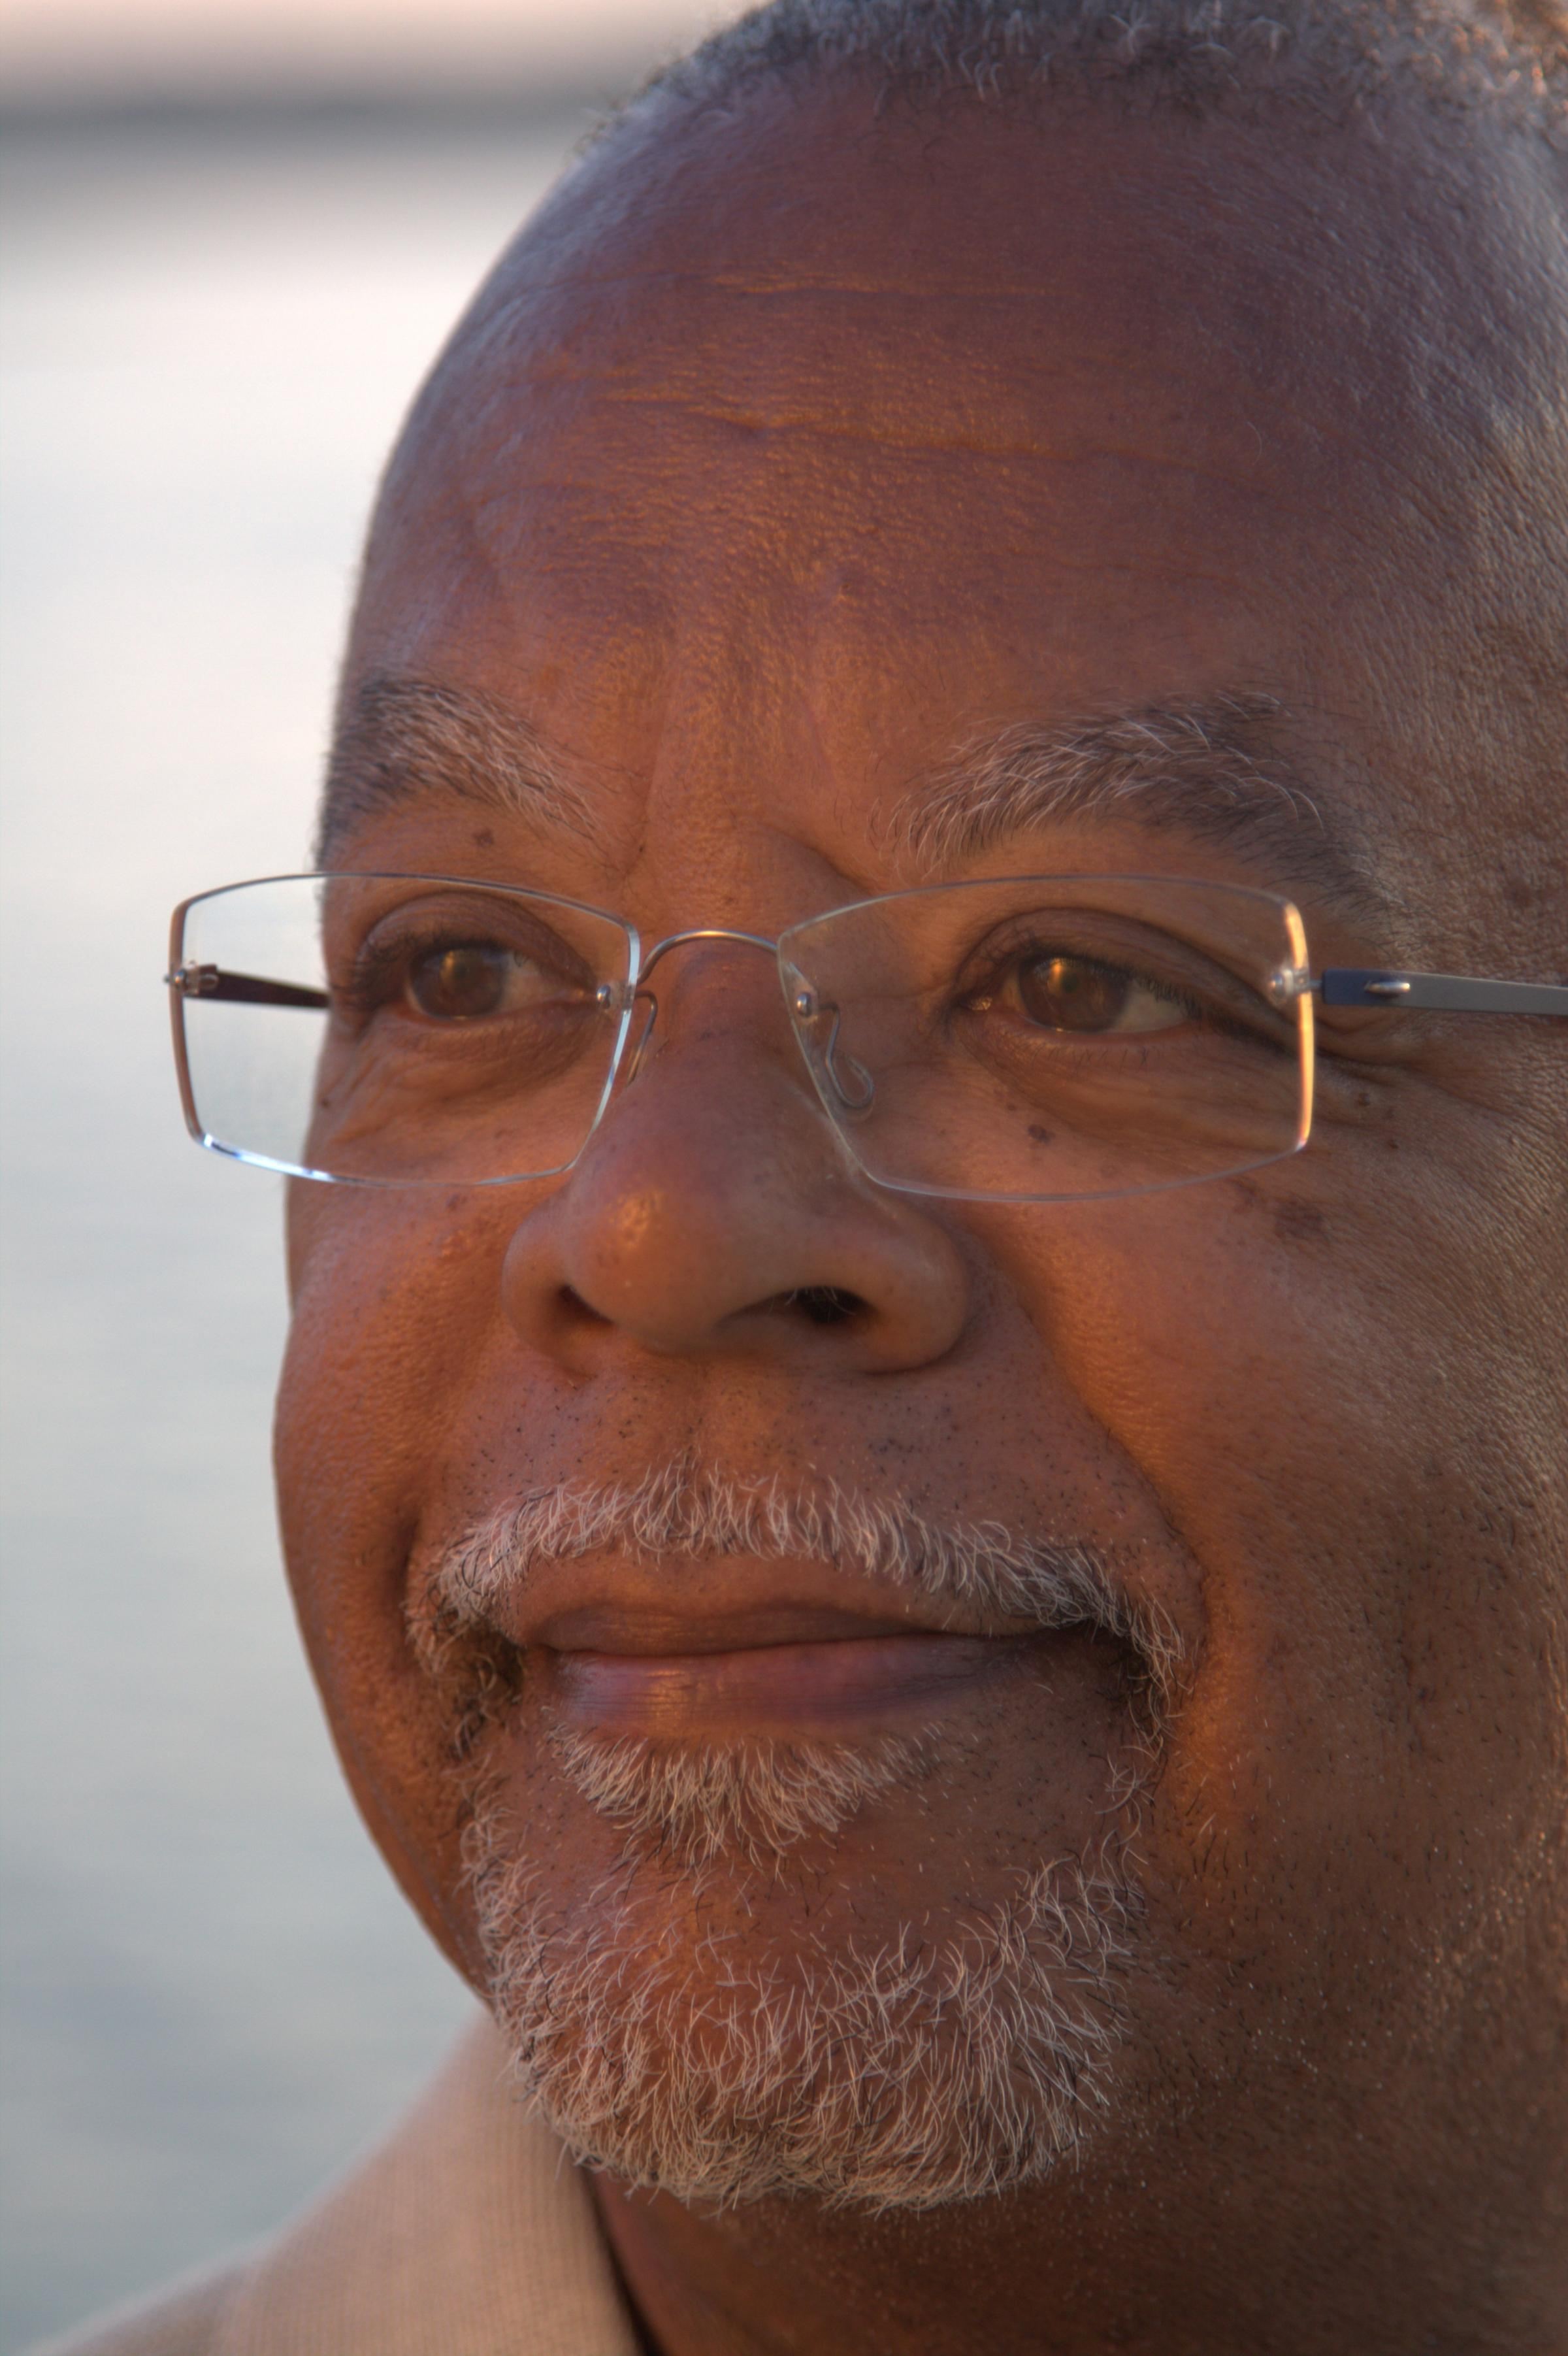 an analysis of henry gates jr The arrest of henry louis gates, jr donald e wilkes jr my analysis with the undisputed basic facts, which are: 1 on the day in question, july 16.